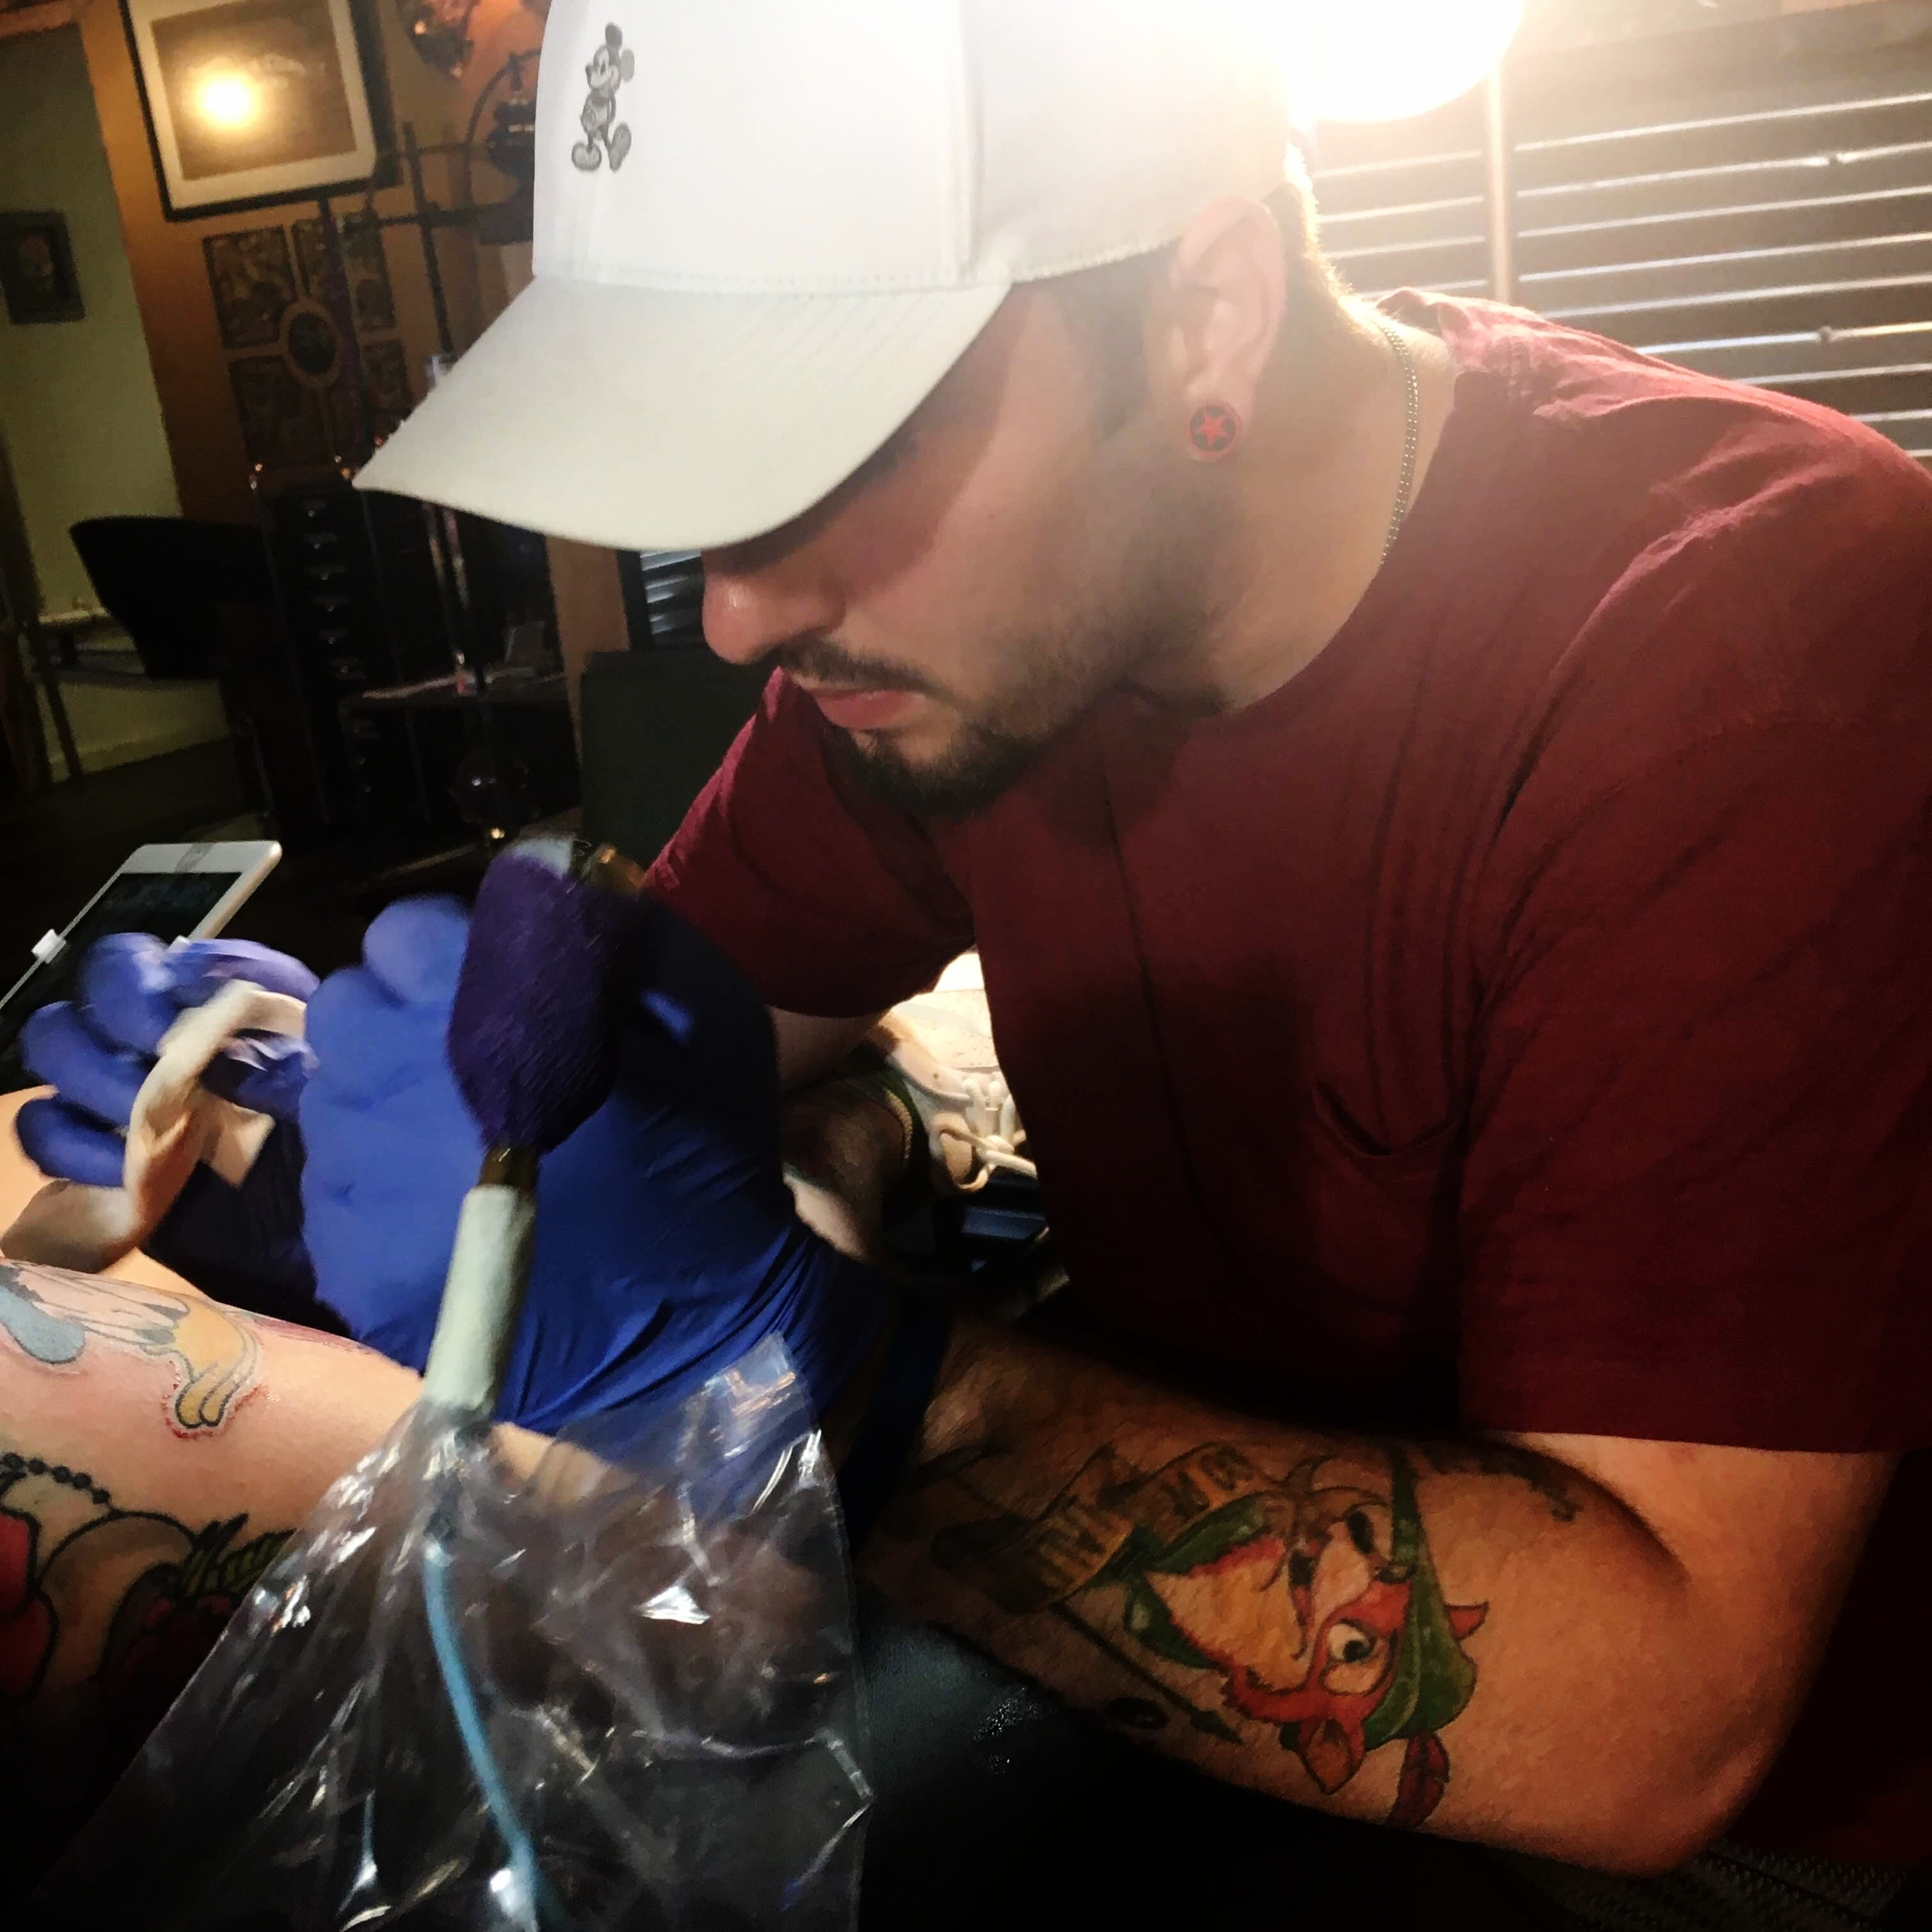 Jesse Bandit - Jesse has been tattooing since 2017. He enjoys tattooing anything horror themed, cartoon, neotraditional as well as black and grey. Jesse is well rounded in most styles but enjoys color the most for the blending. He is more known for his brighter color works. Click his photo to check out his work!